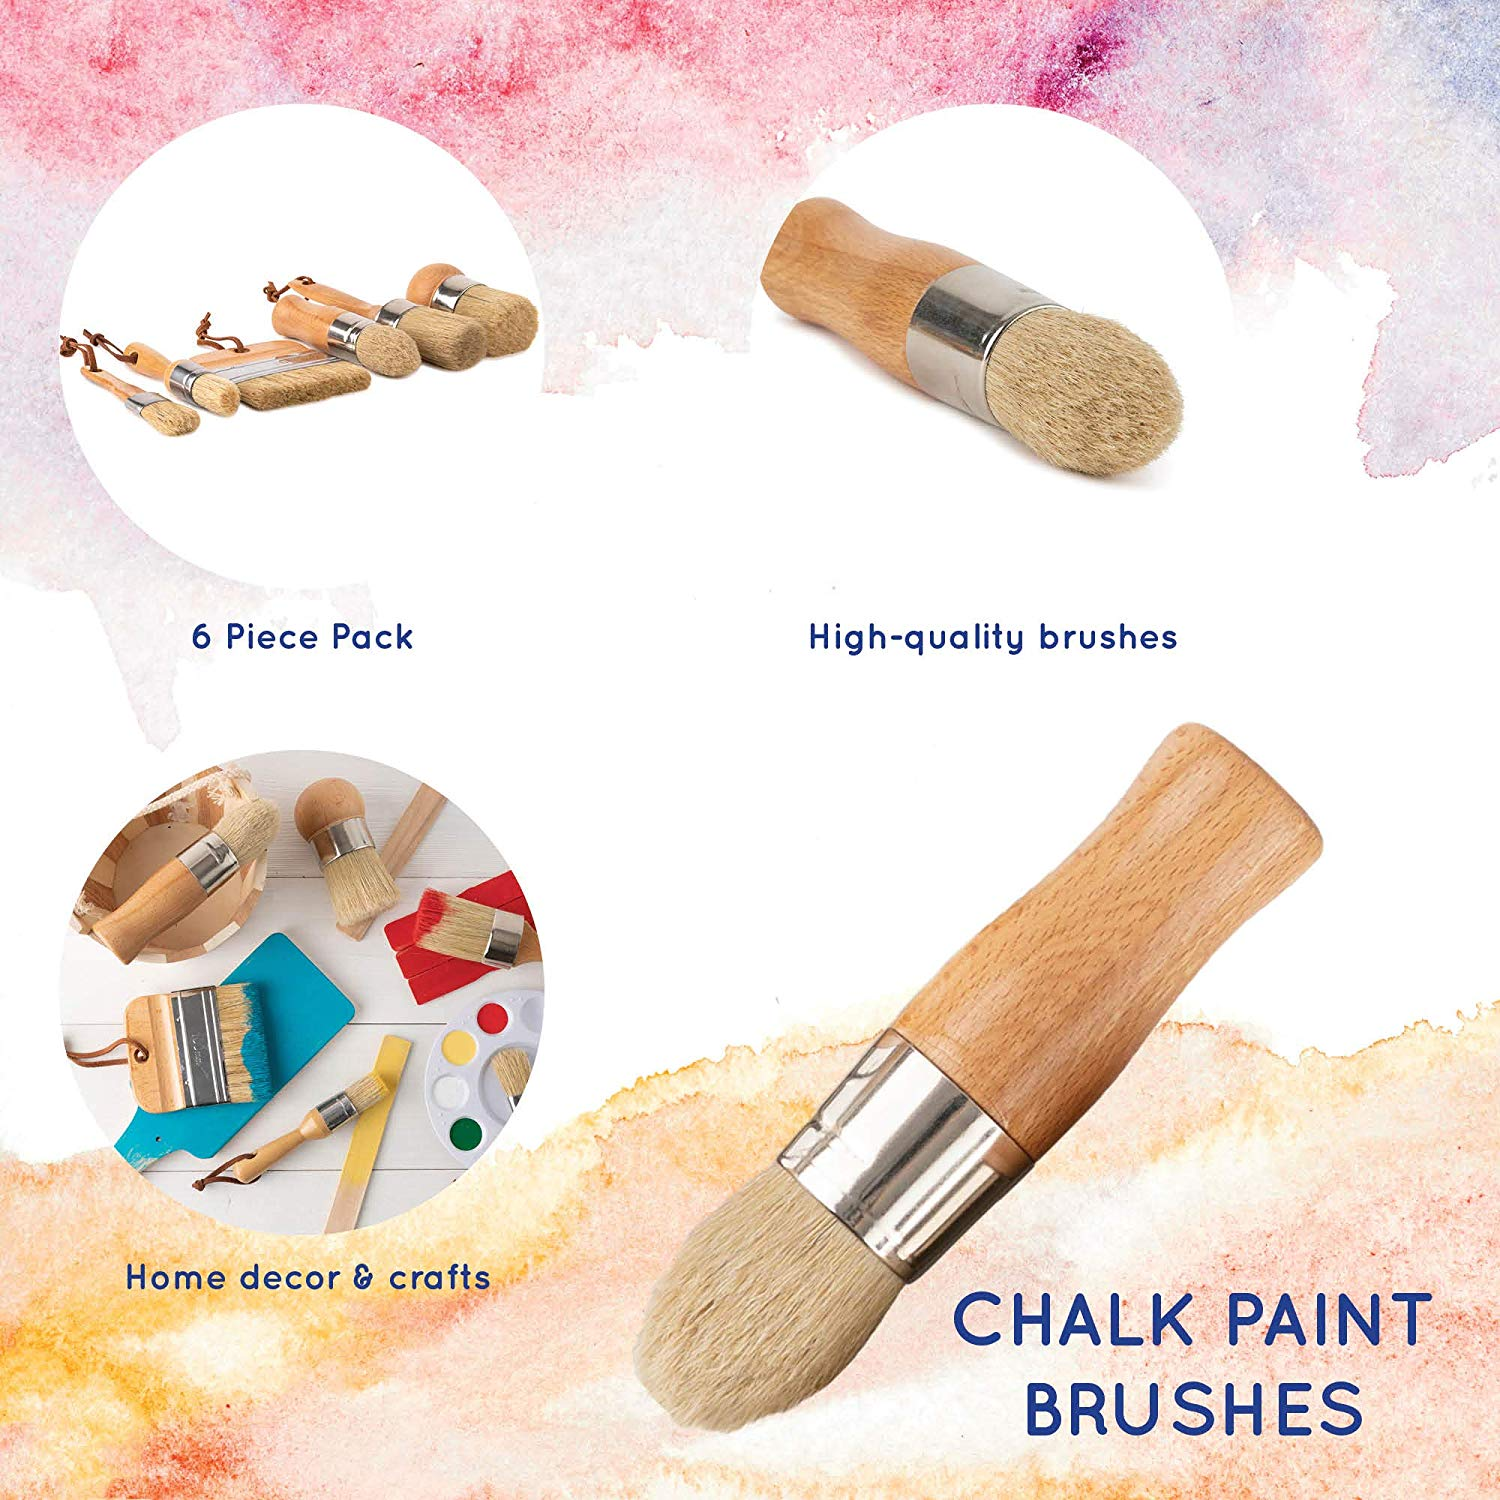 100/% Natural Boar Bristles Smooth Coverage for Furniture Ergonomic Handles Milk Paint /& Stencil DIYARTZ Chalk /& Wax Paint Brush for Waxing /& Painting Projects Minimum Shedding Wide /& Pointed